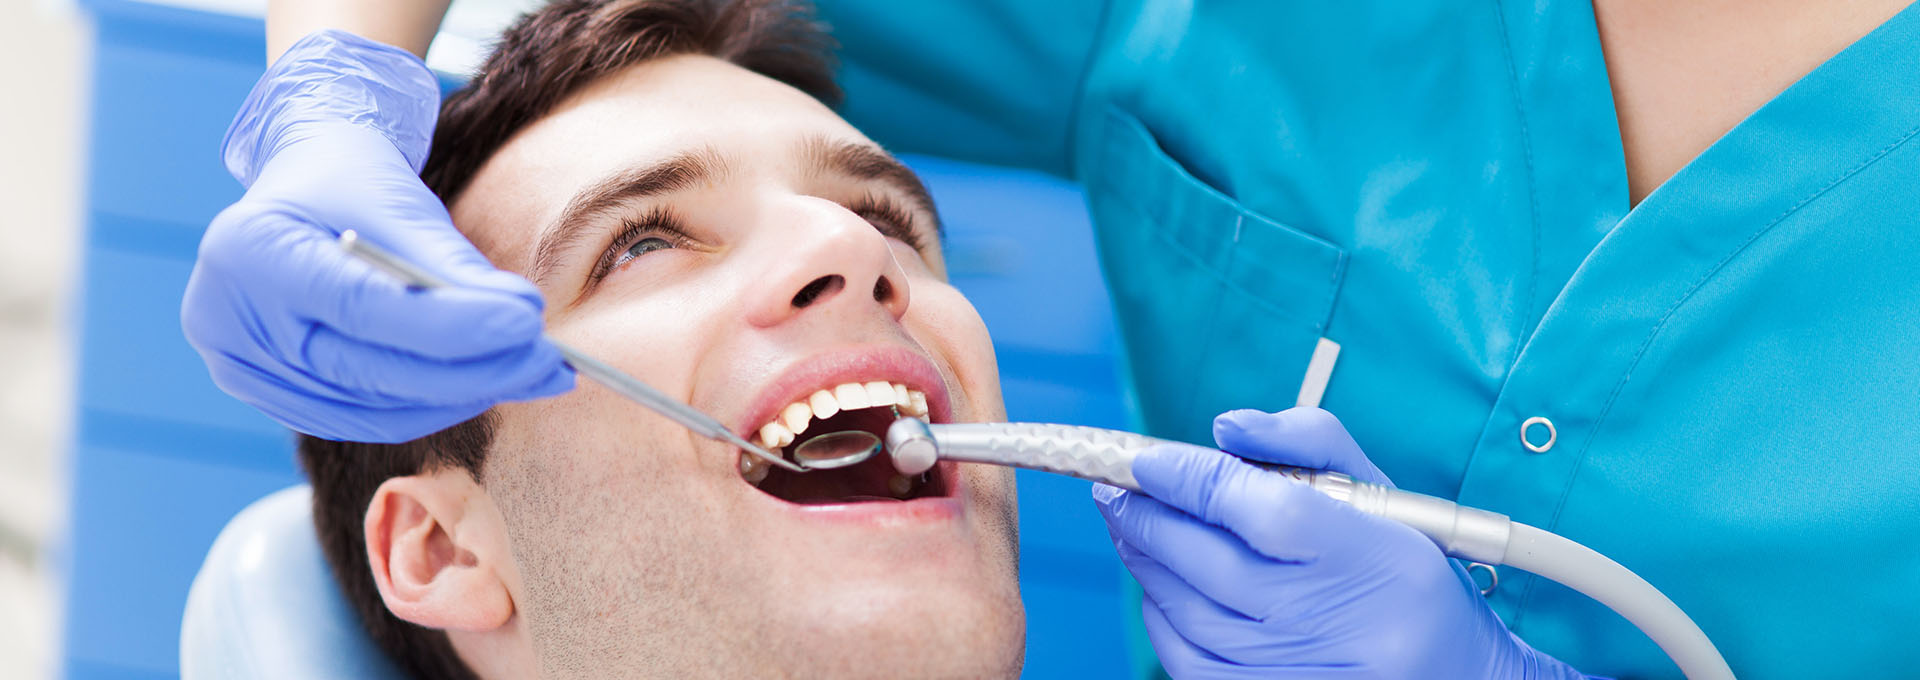 Dental Insurance and the Cost of a Hollywood Smile